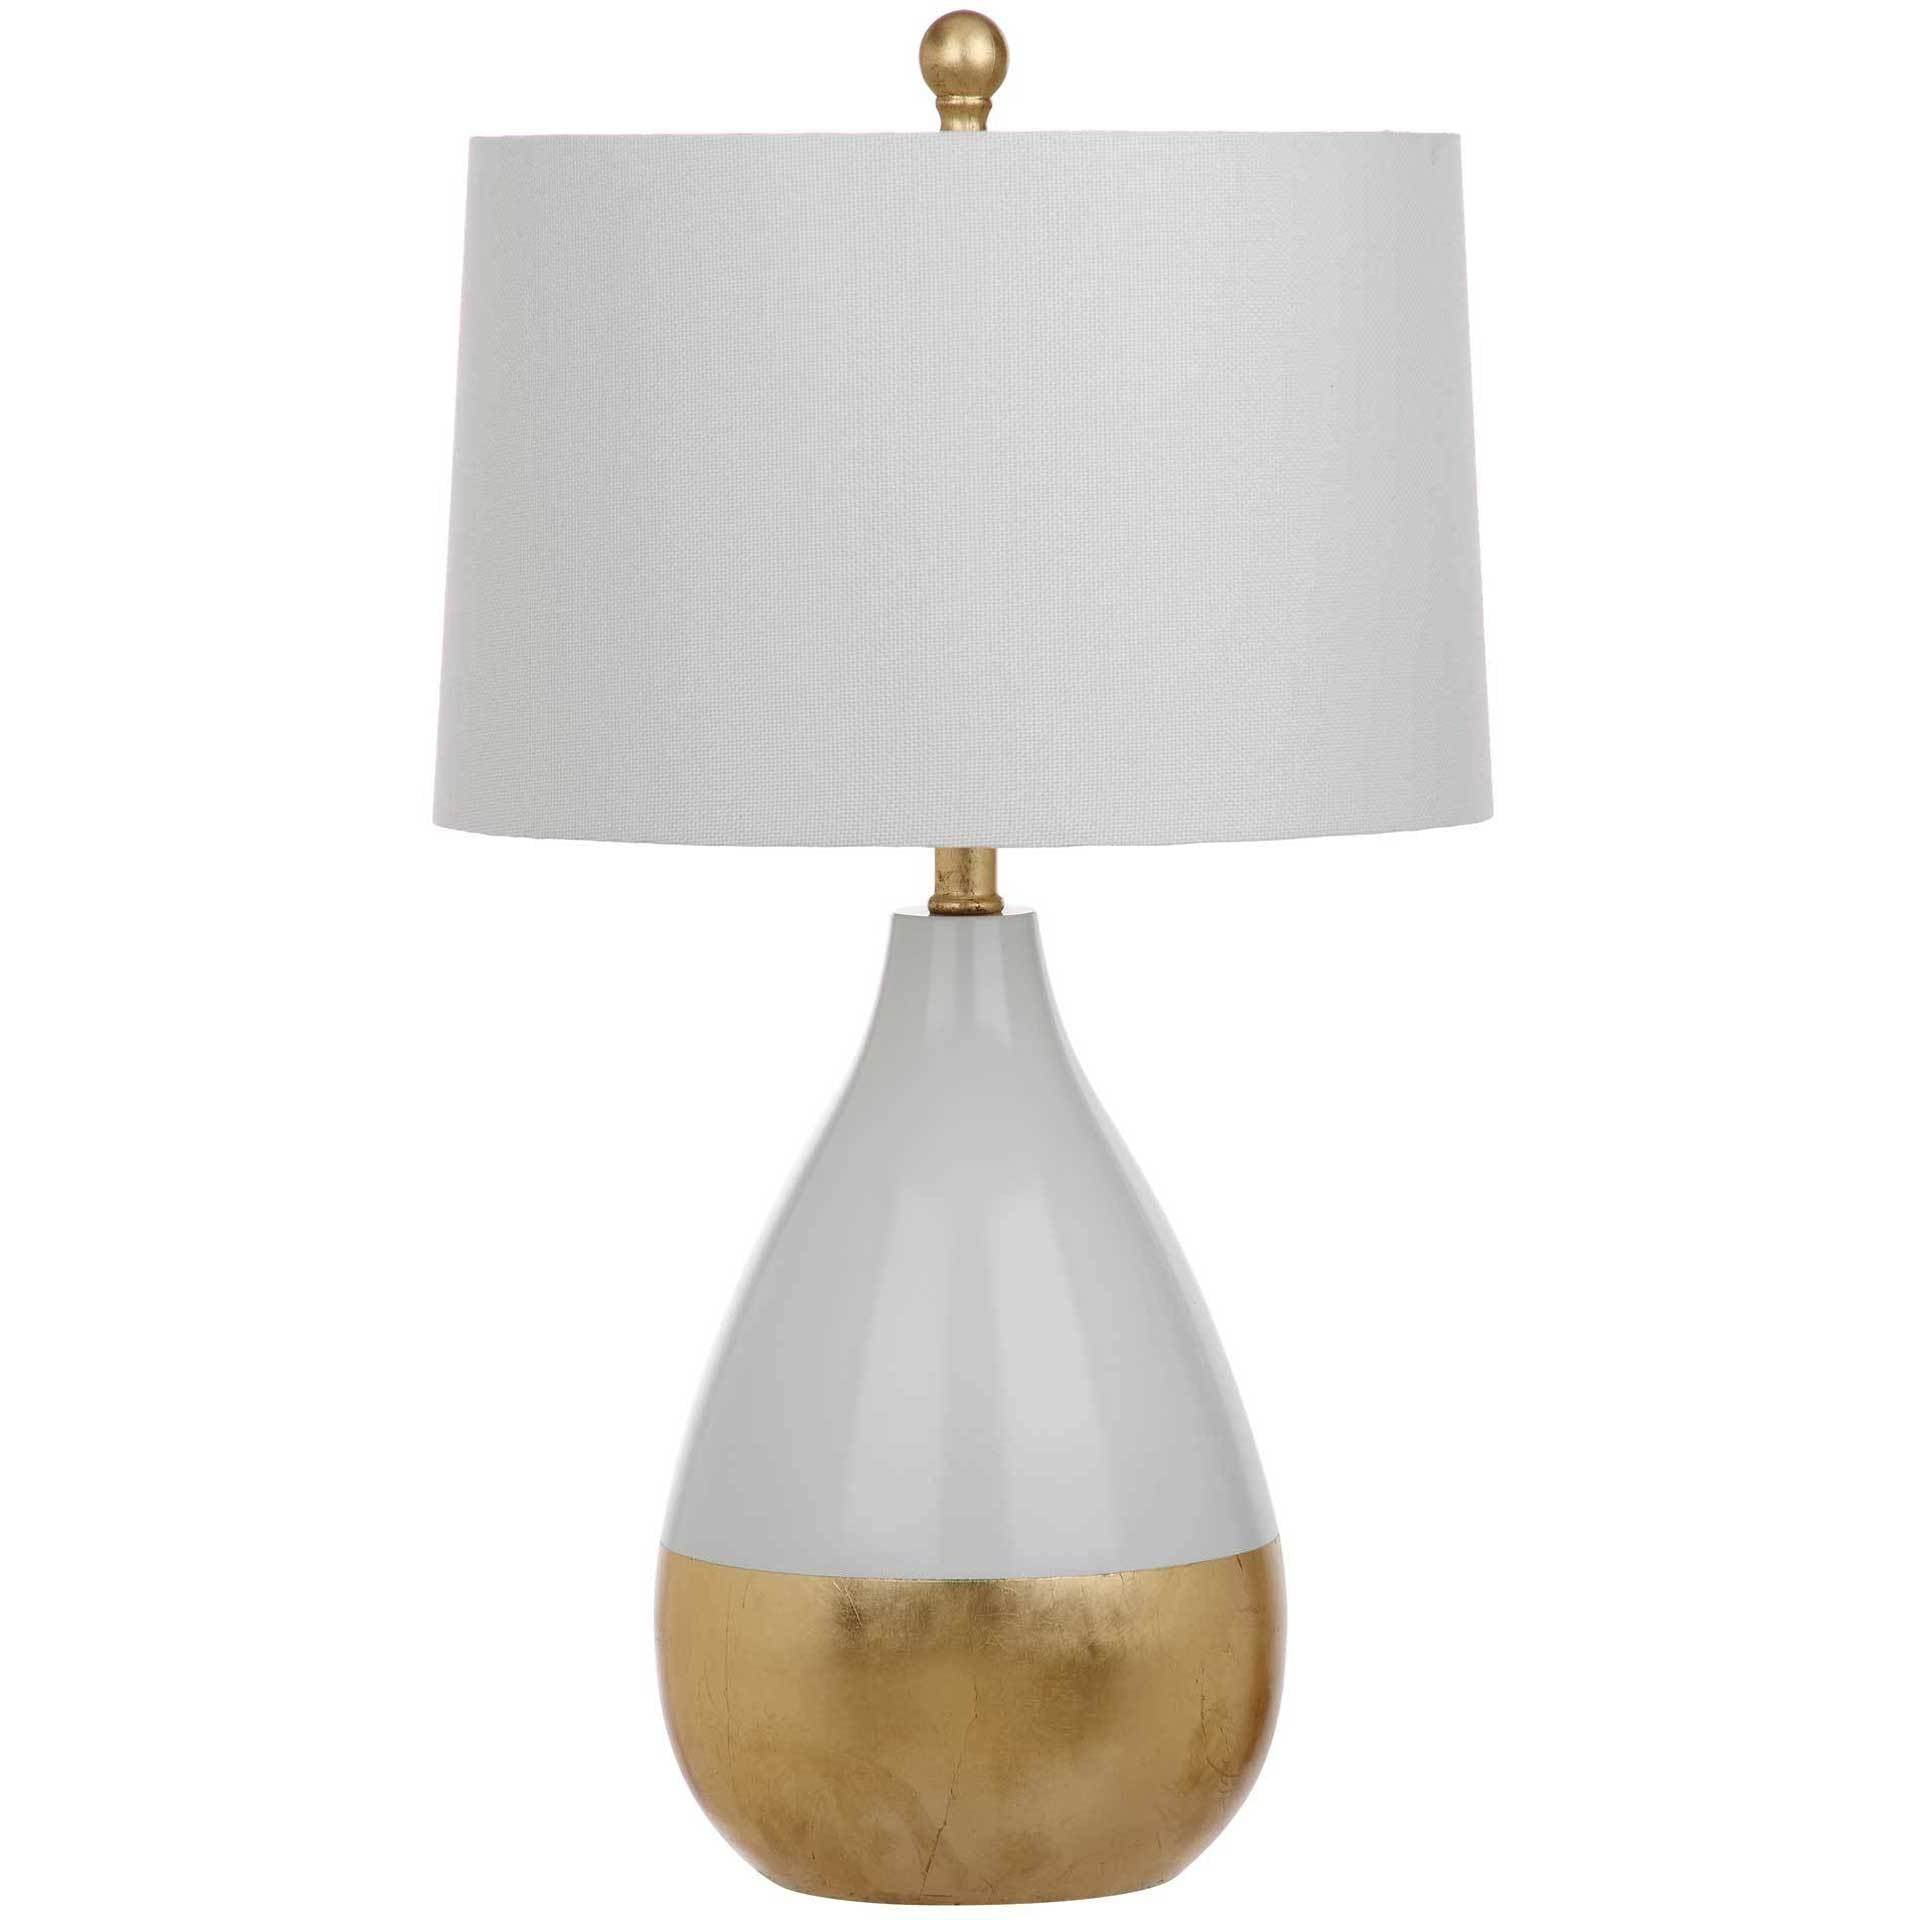 Kiara Table Lamp White/Gold (Set of 2)